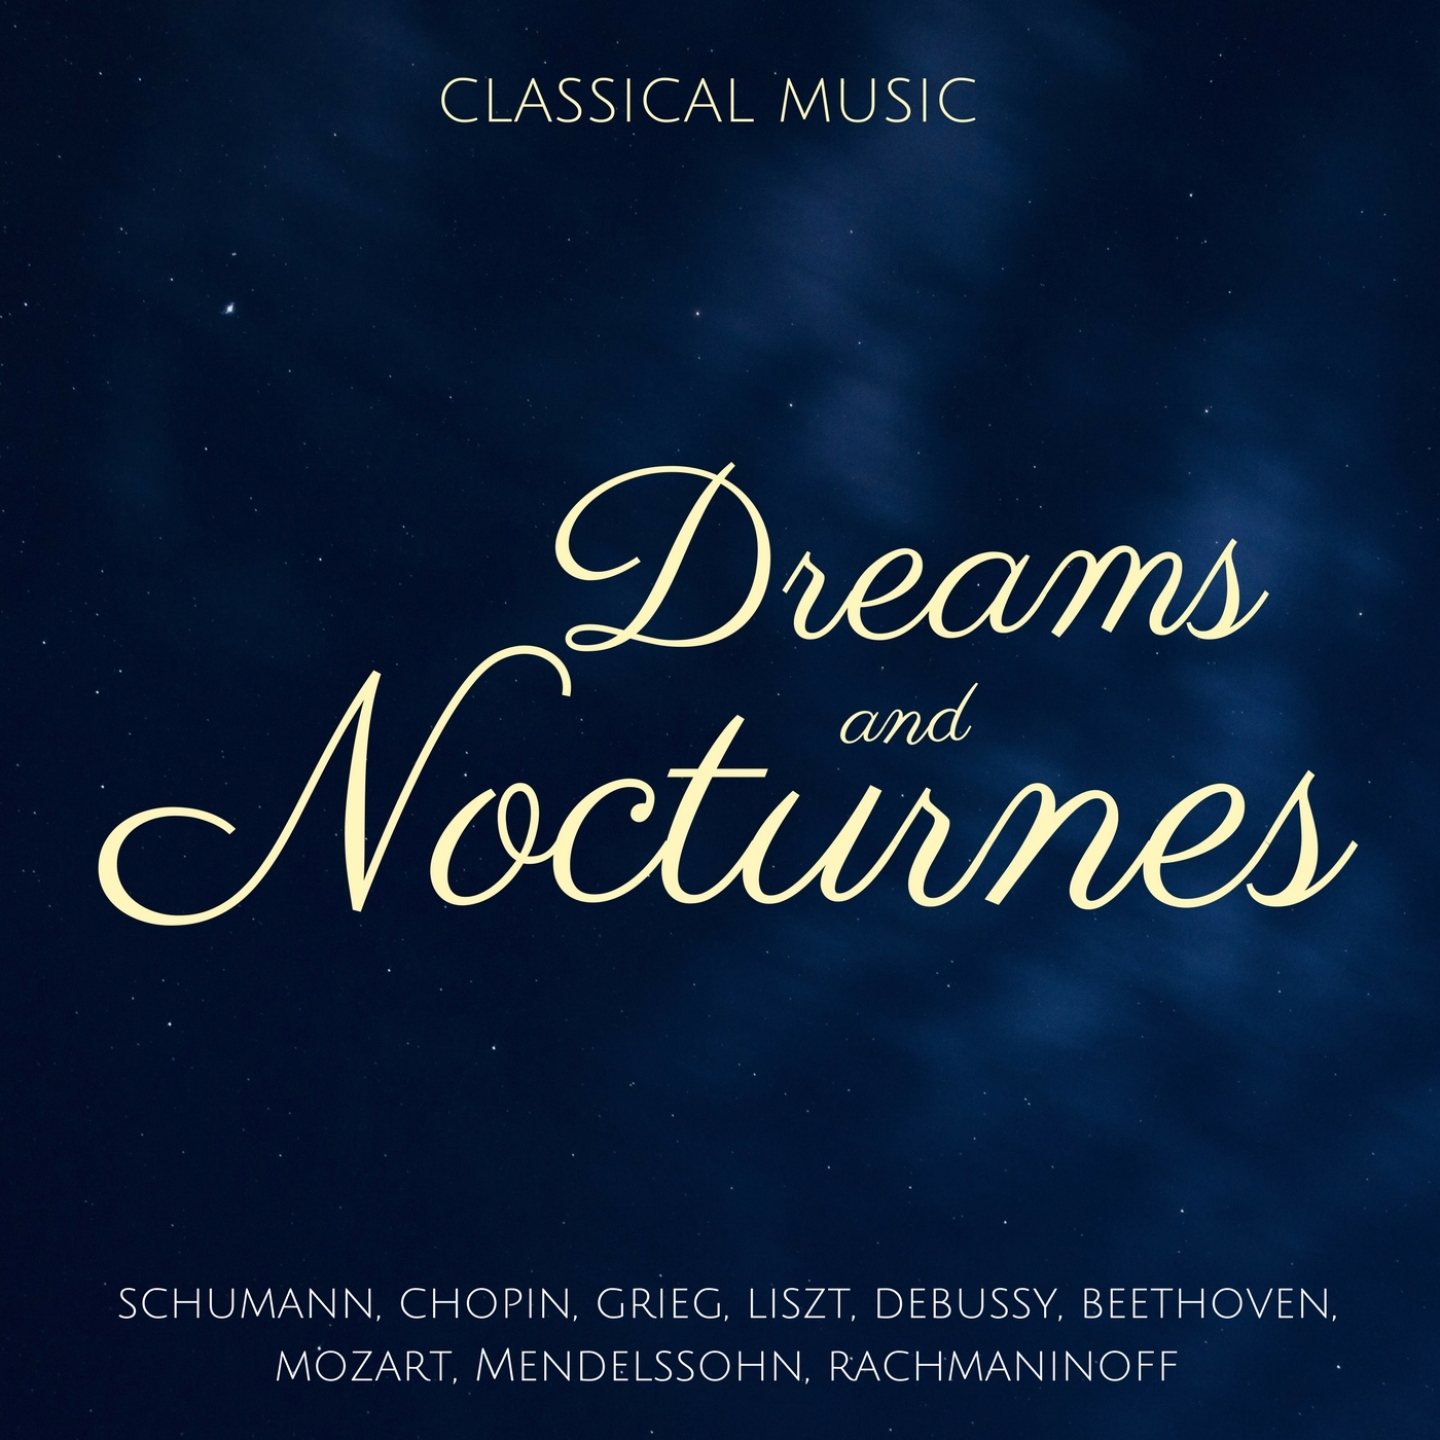 Dreams and Nocturnes